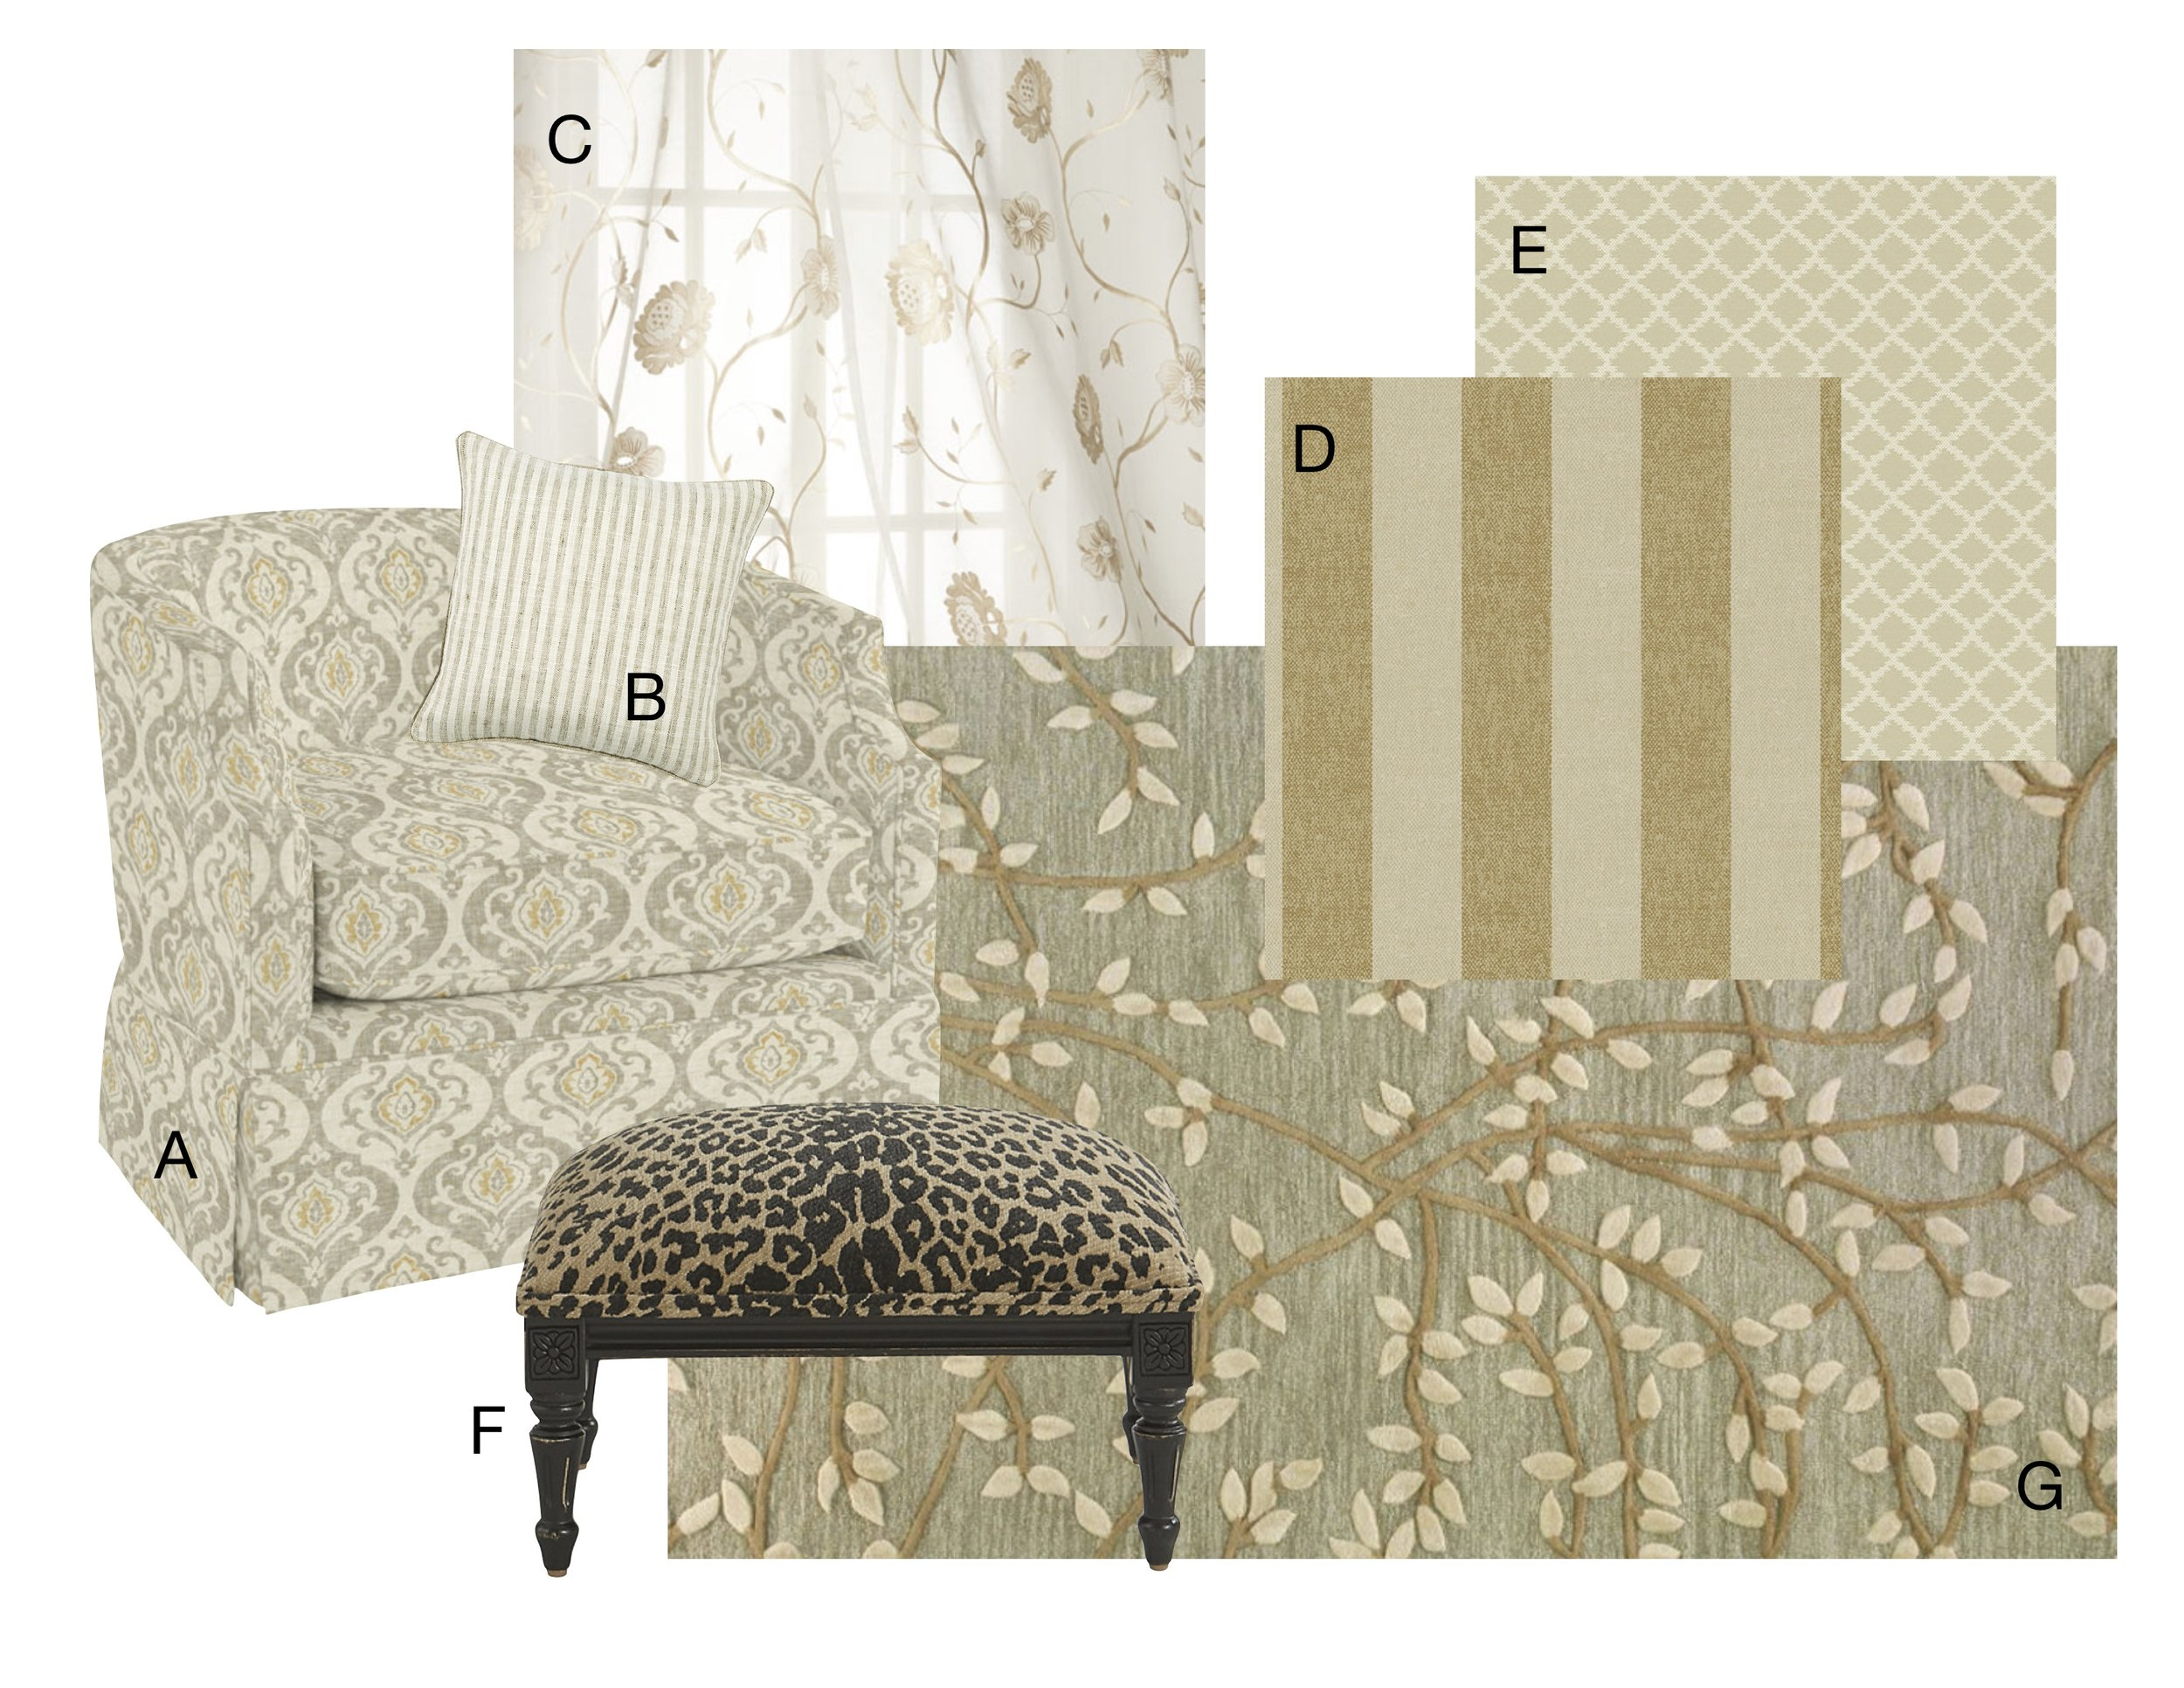 A Swivel glider chair    |    B Striped pillow    |    C Embroidered curtain panel    |    D Gold striped Sunbrella fabric    |    E jacquard weave Sunbrella trellis fabric    |    F Leopard print stool    |    Vine wool area rug